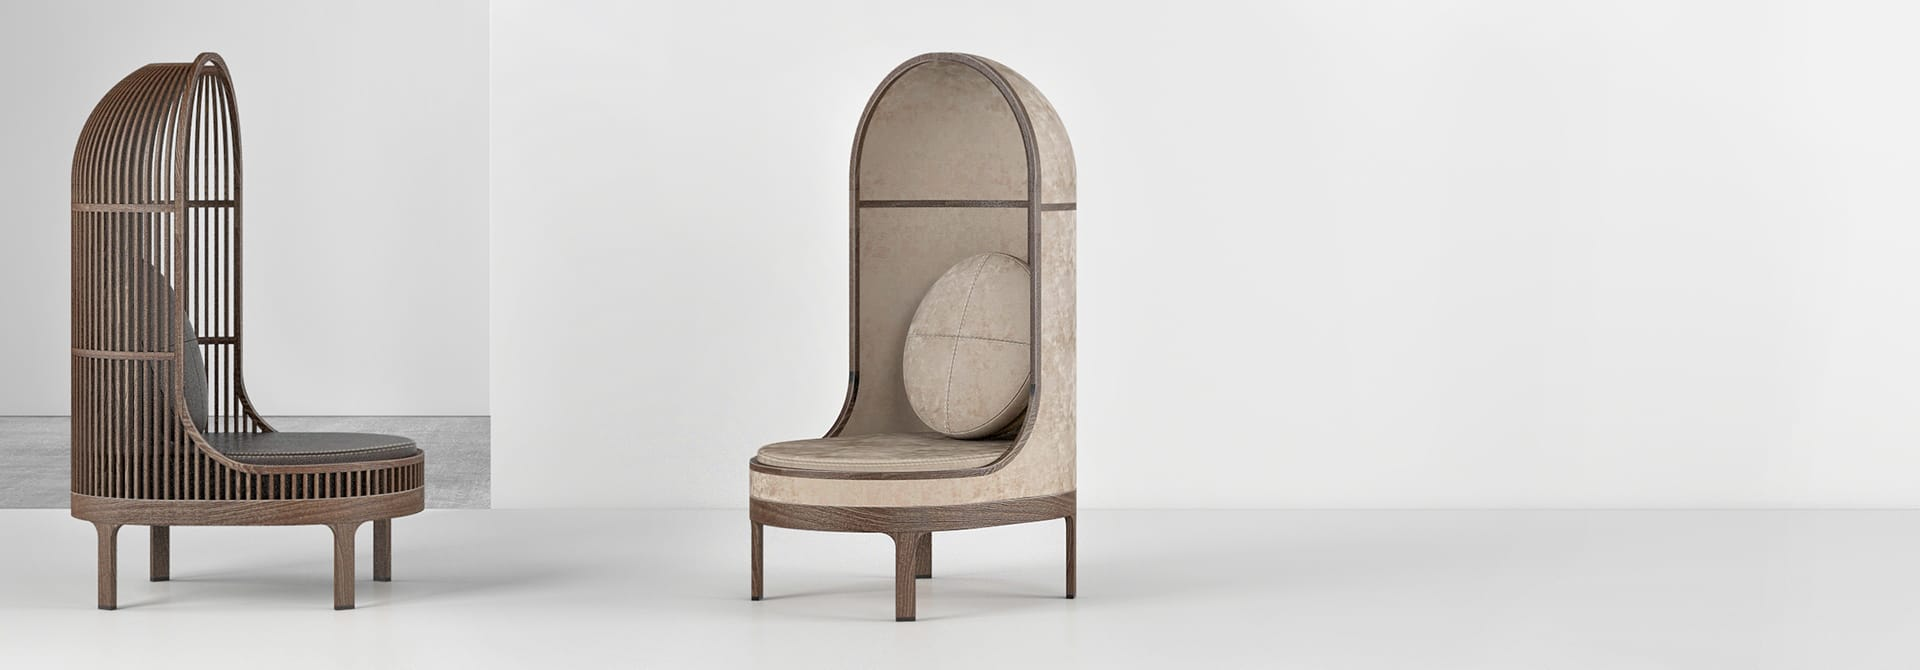 Charming Nest Chair Great Ideas